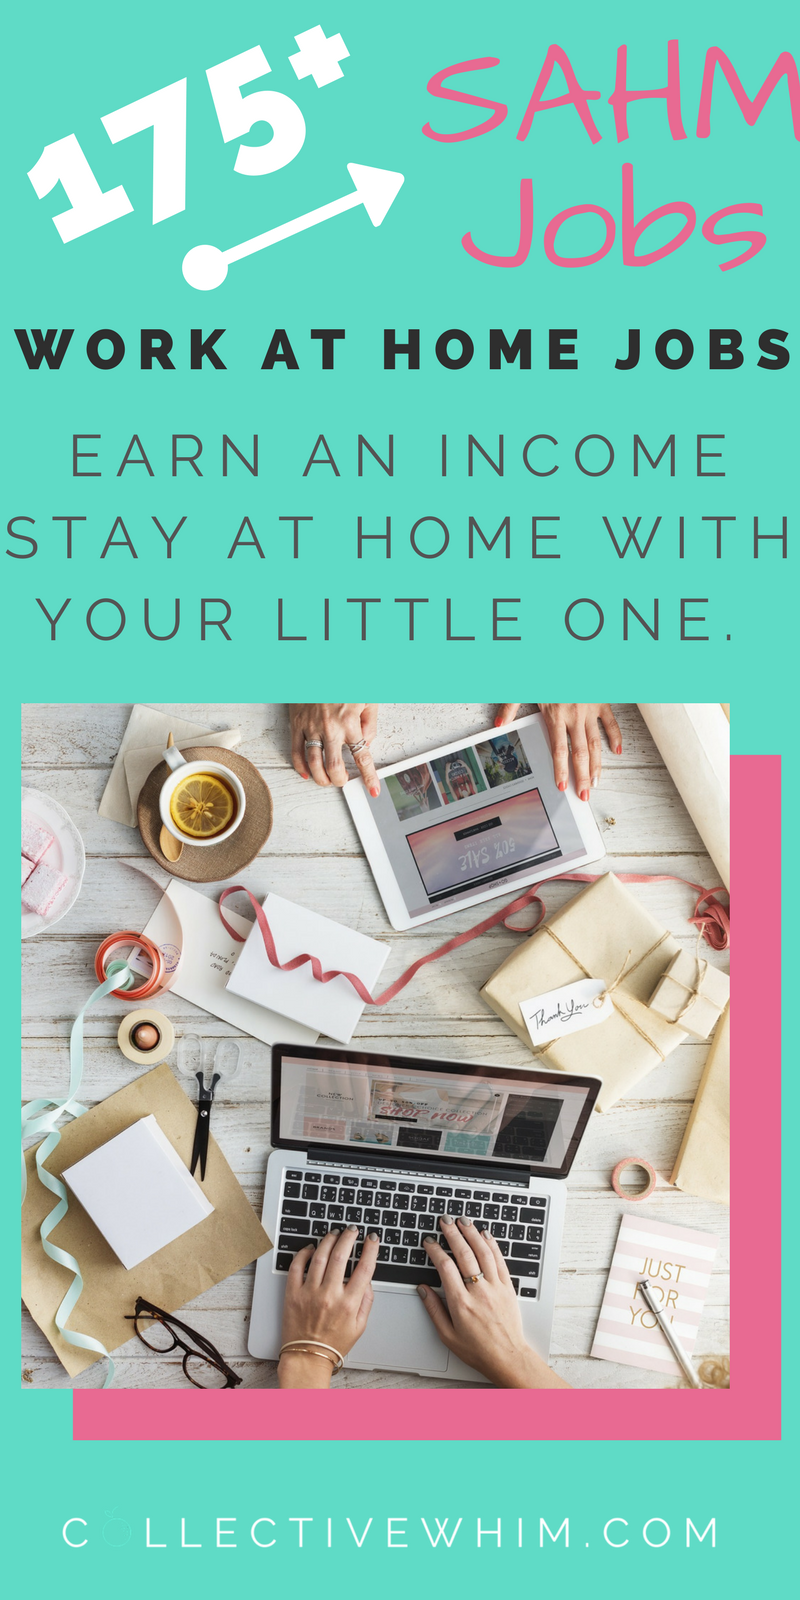 Money making opportunities for stay at home moms